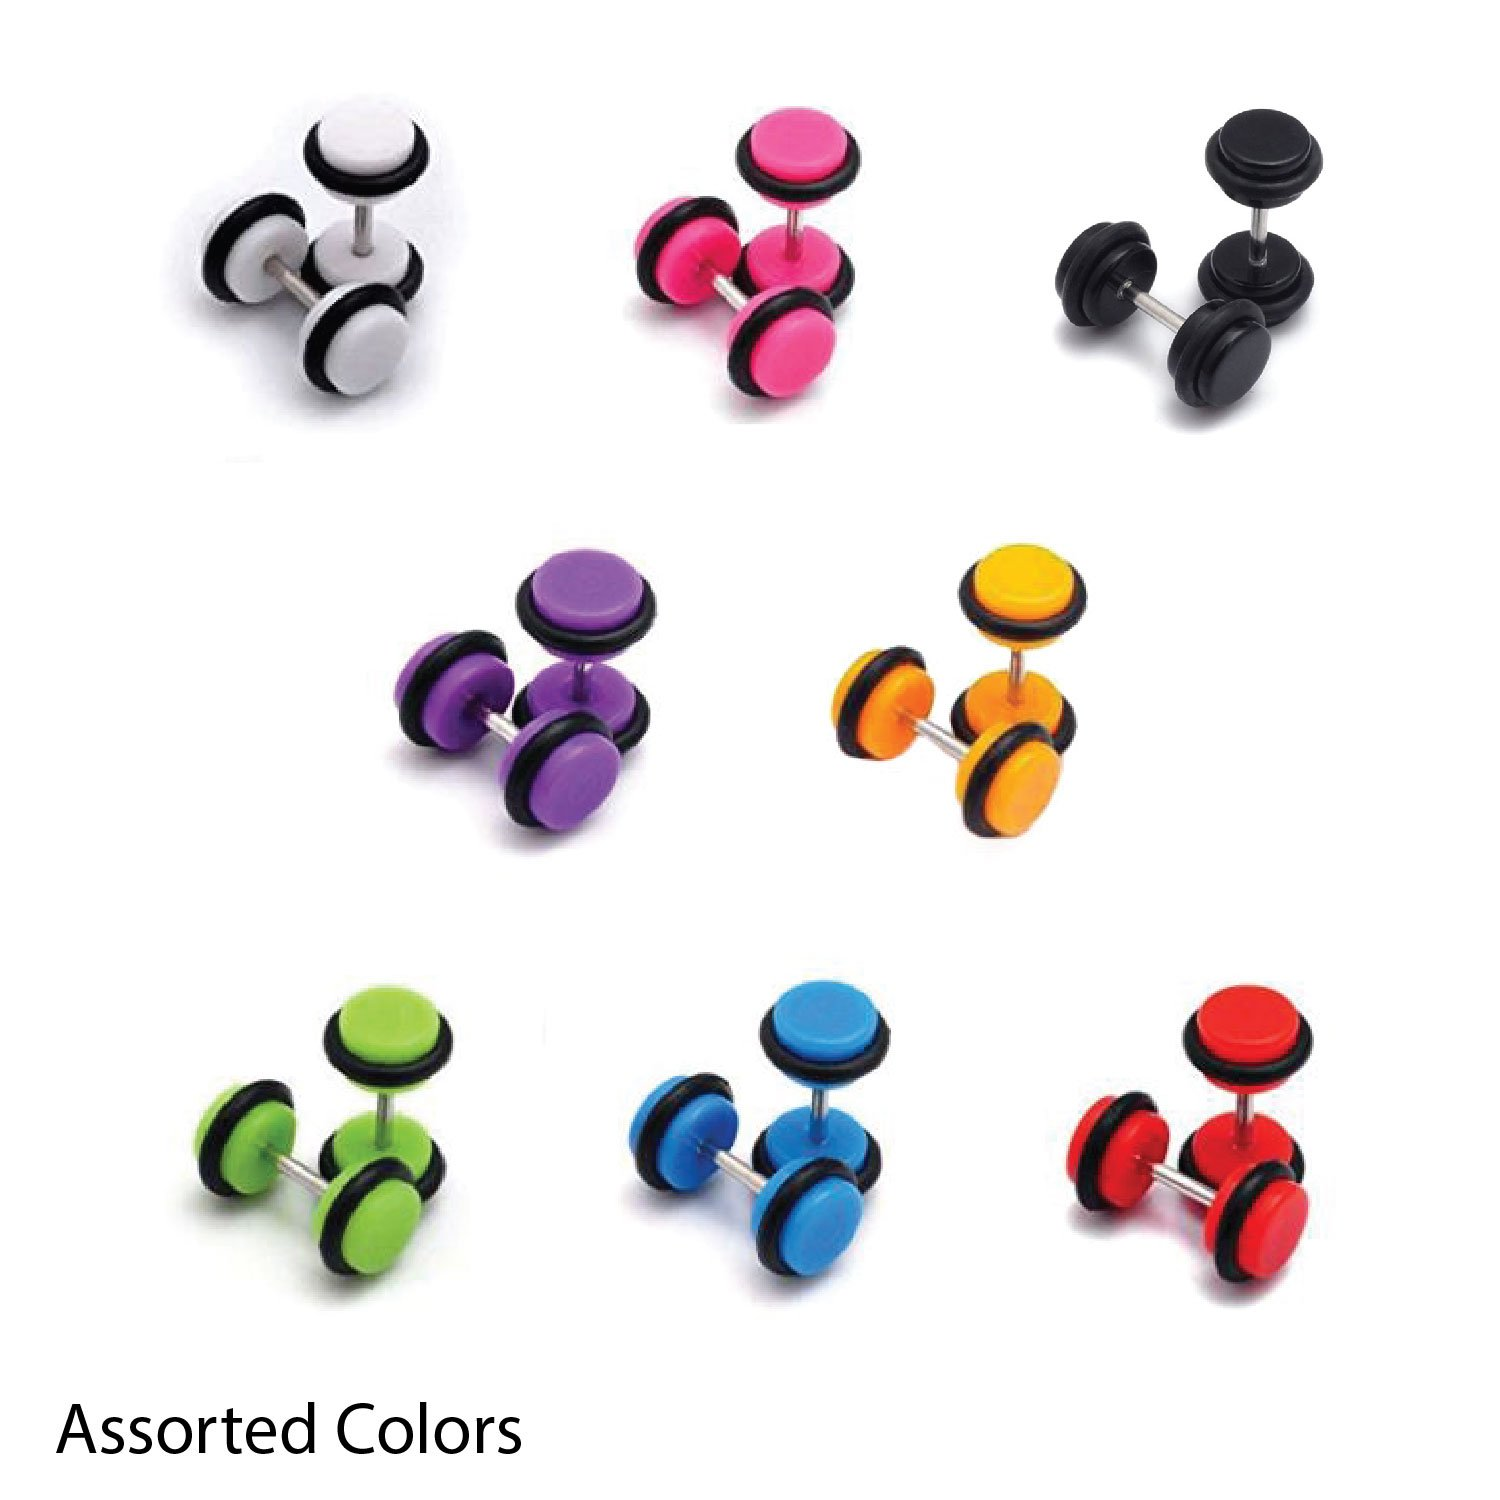 Amazon: Earrings Lot Of 14 Pieces Multicolor Acrylic Fake Plugs Kit 0g  Gauges Look (7 Pairs): Jewelry